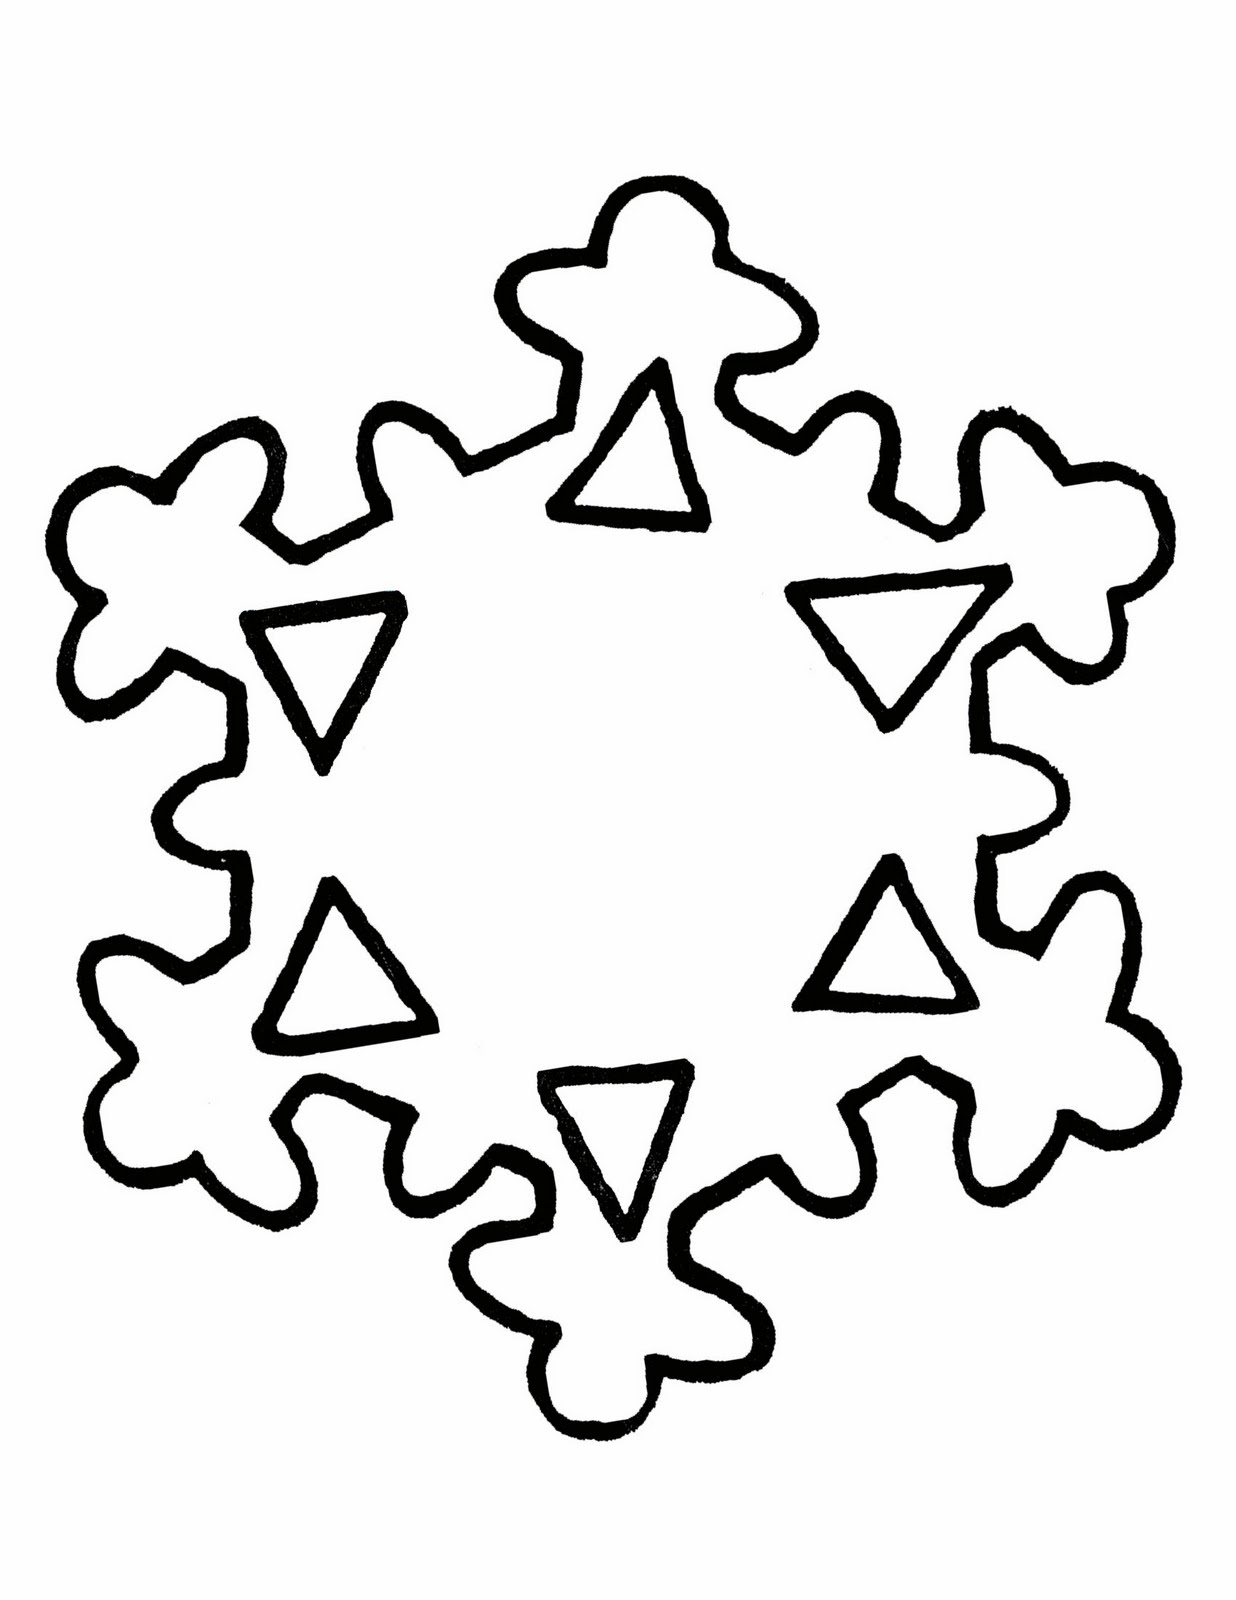 Free Cliparts Snowflake Patterns Download Free Clip Art